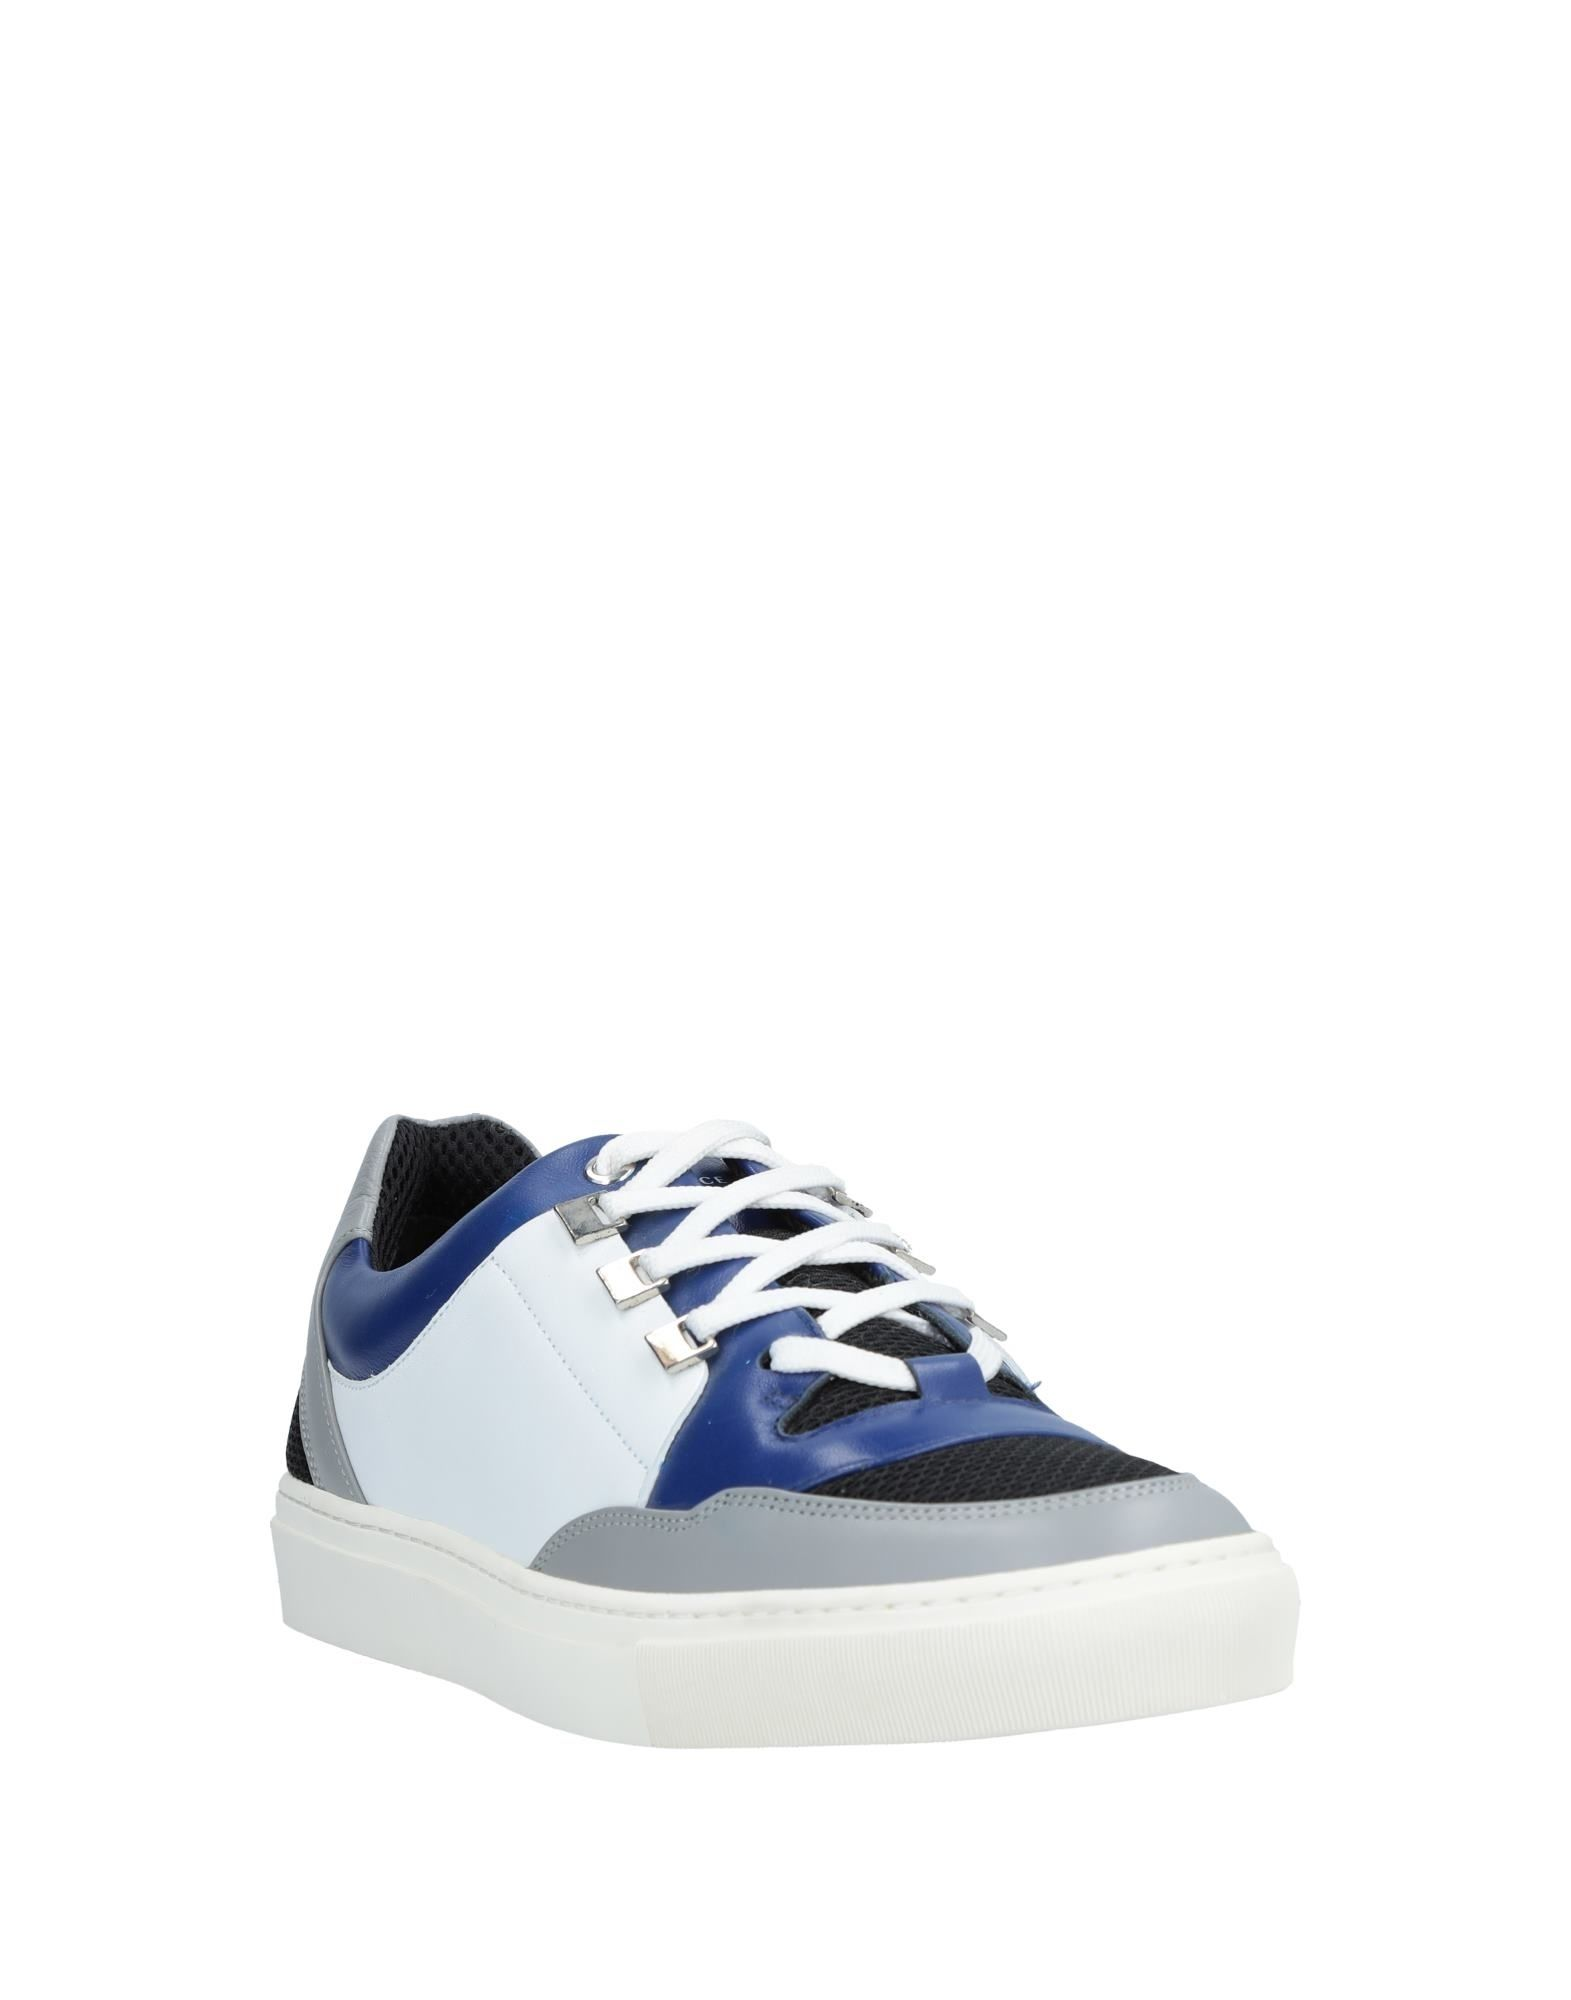 Versace Collection Sneakers Herren    11535728MR ce9f13